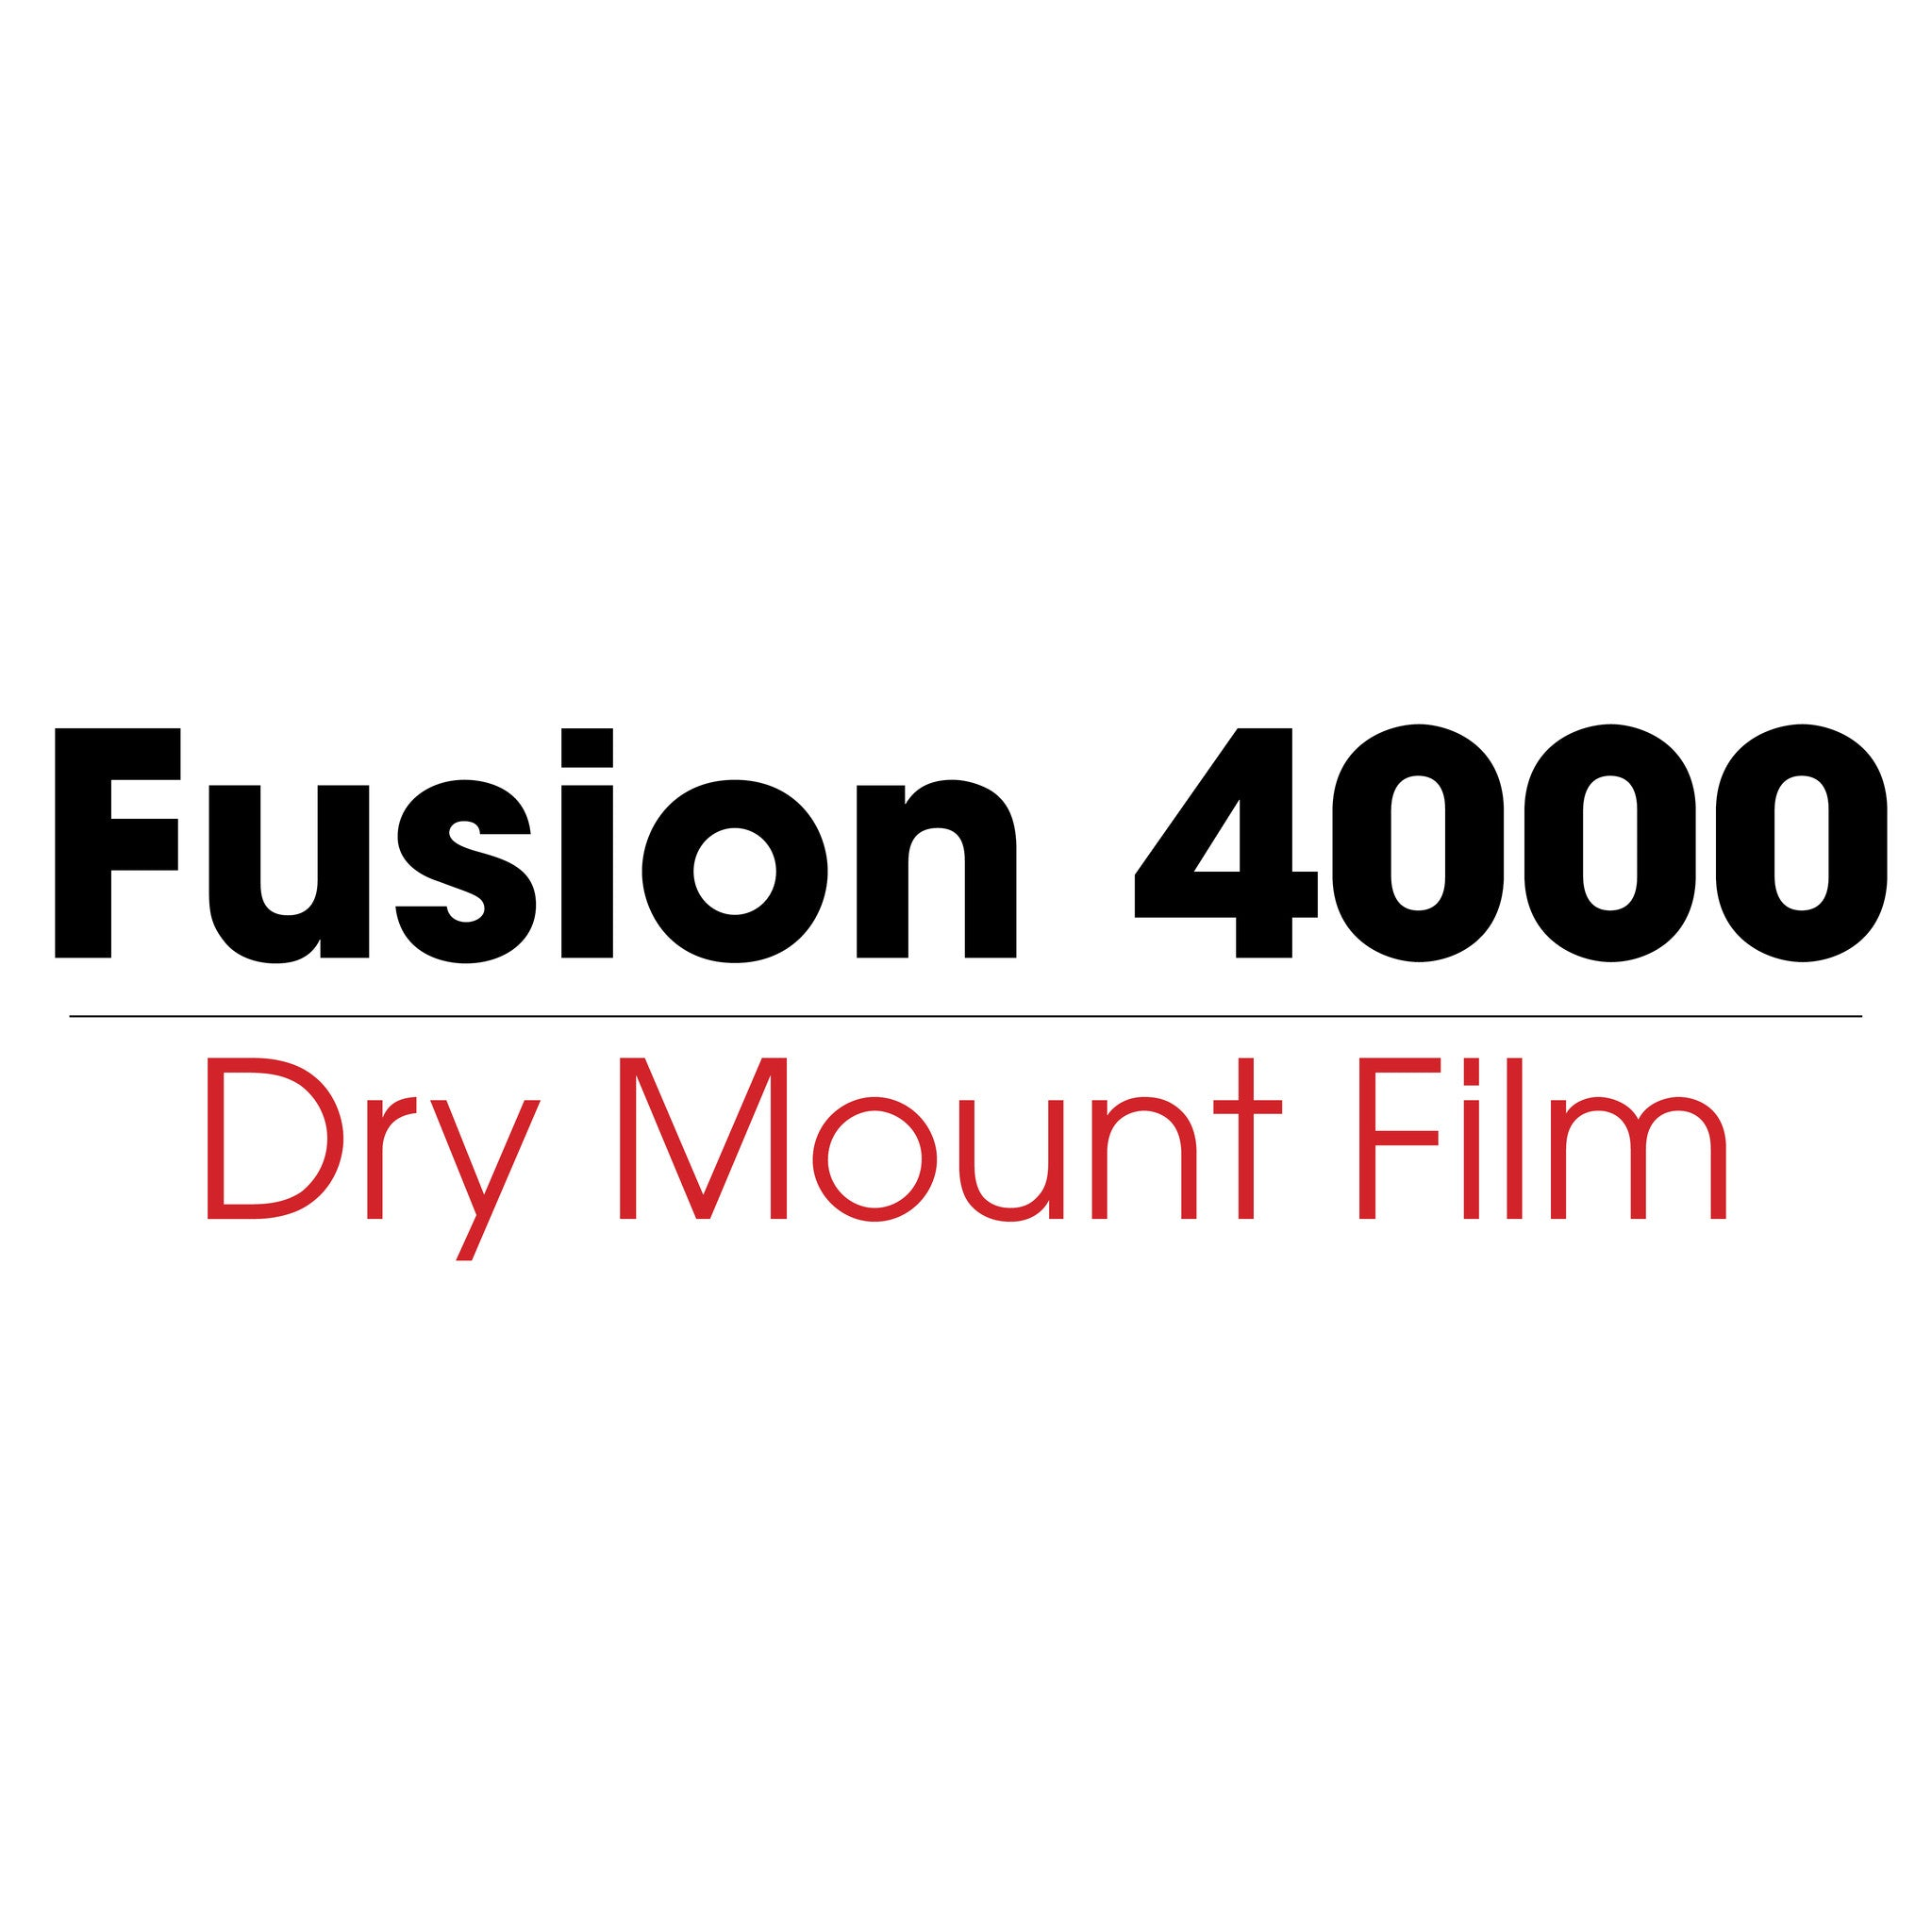 Fusion 4000 Acid Free - Dry Mount Film (heat activated) - mountingsubstrates.com